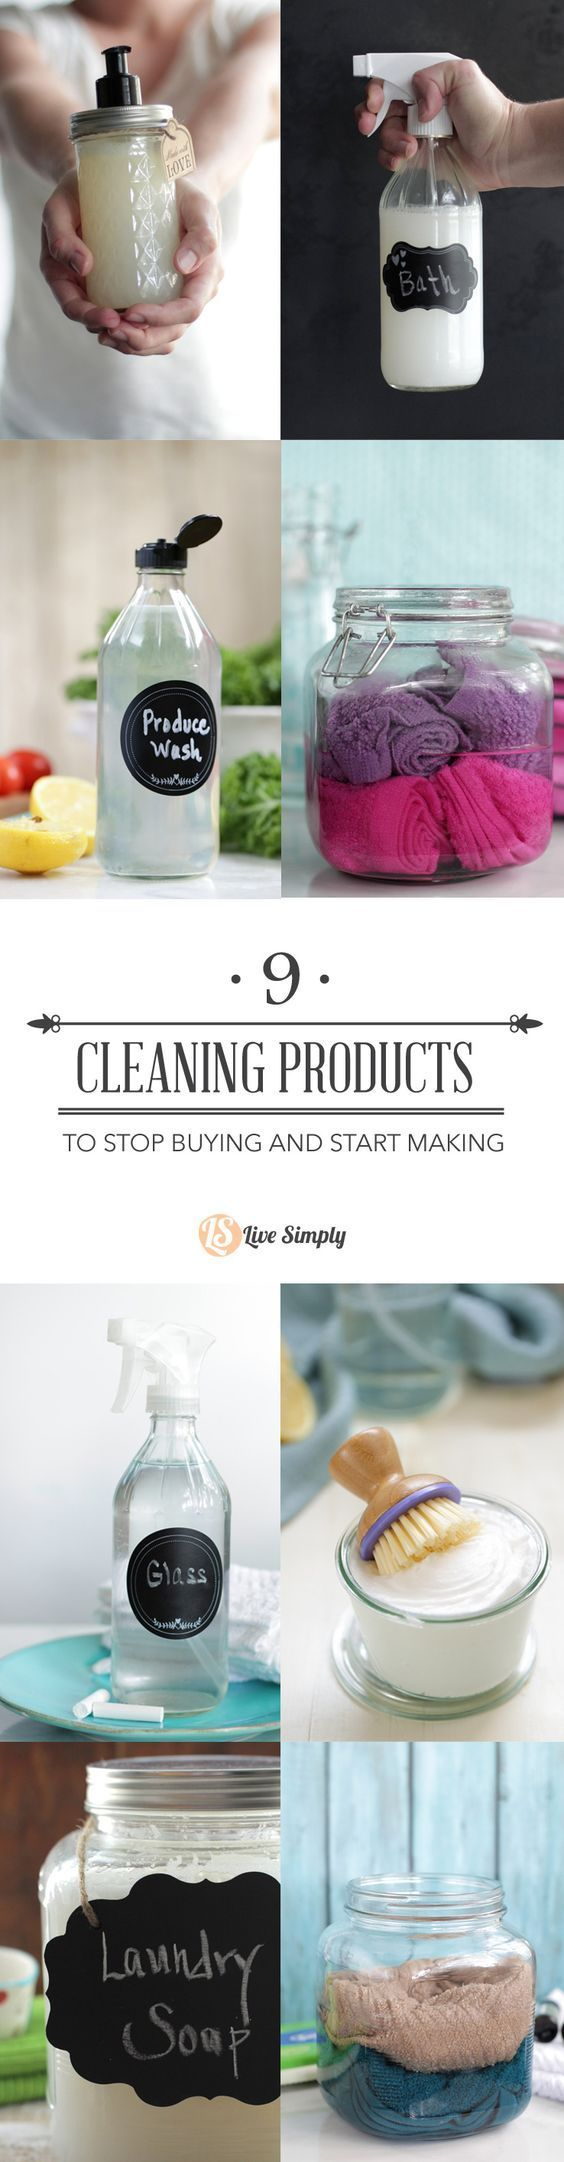 how to make bathroom cleaning wipes